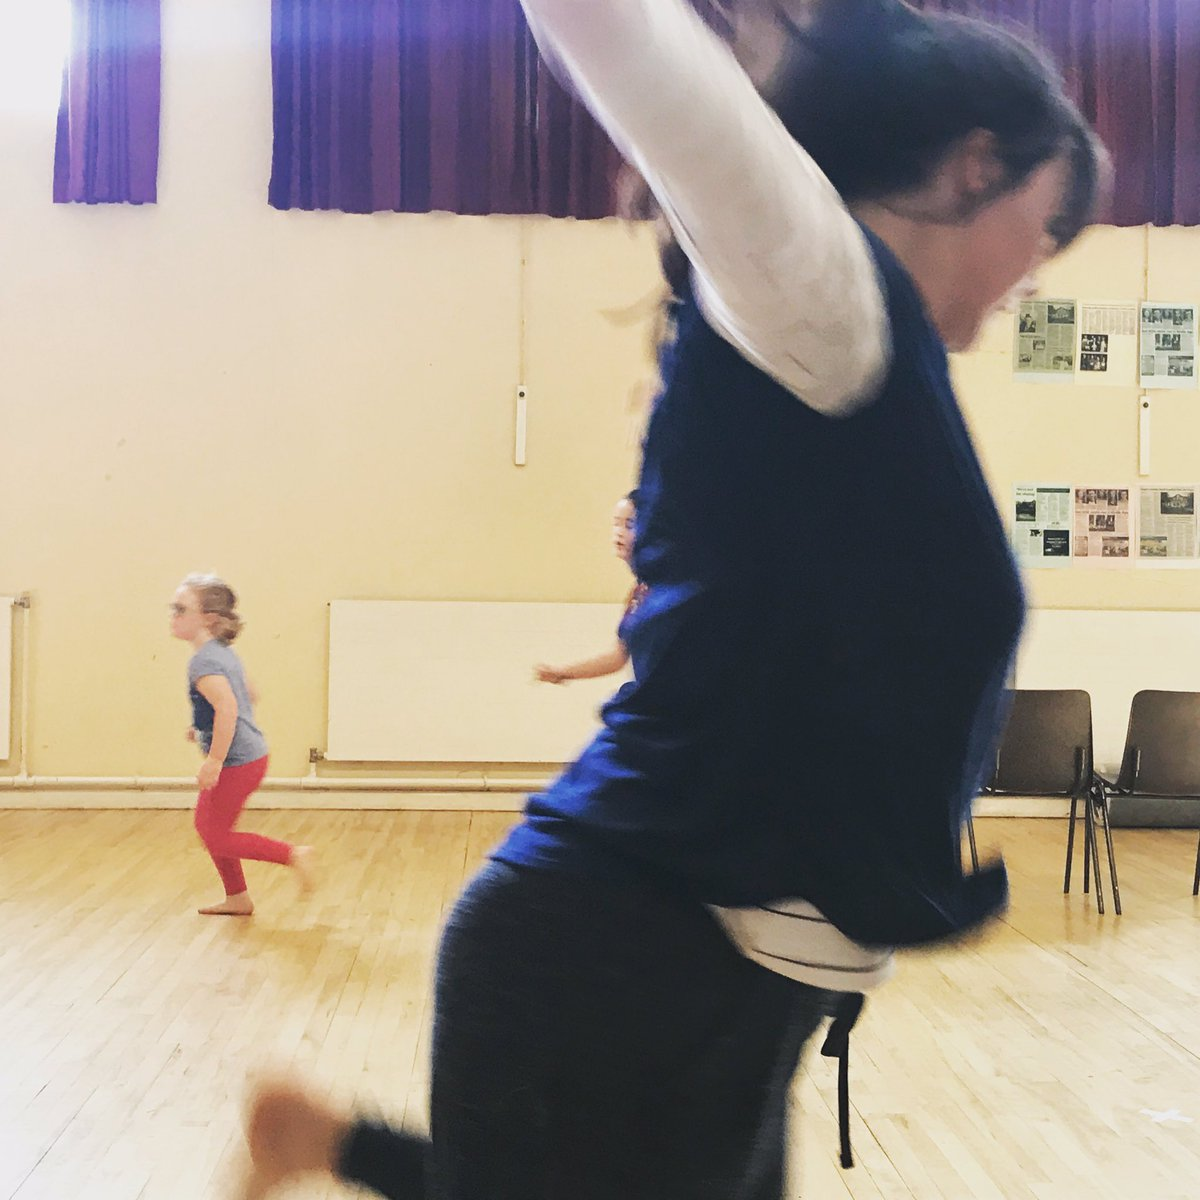 test Twitter Media - Unrelated. Intergenerational. Sharing love of dance. #ANDdream @ANDborough #PEACE #SEUPB #Shakespeare #bodypositive #artsmatterni https://t.co/ZrDbvmzxlH